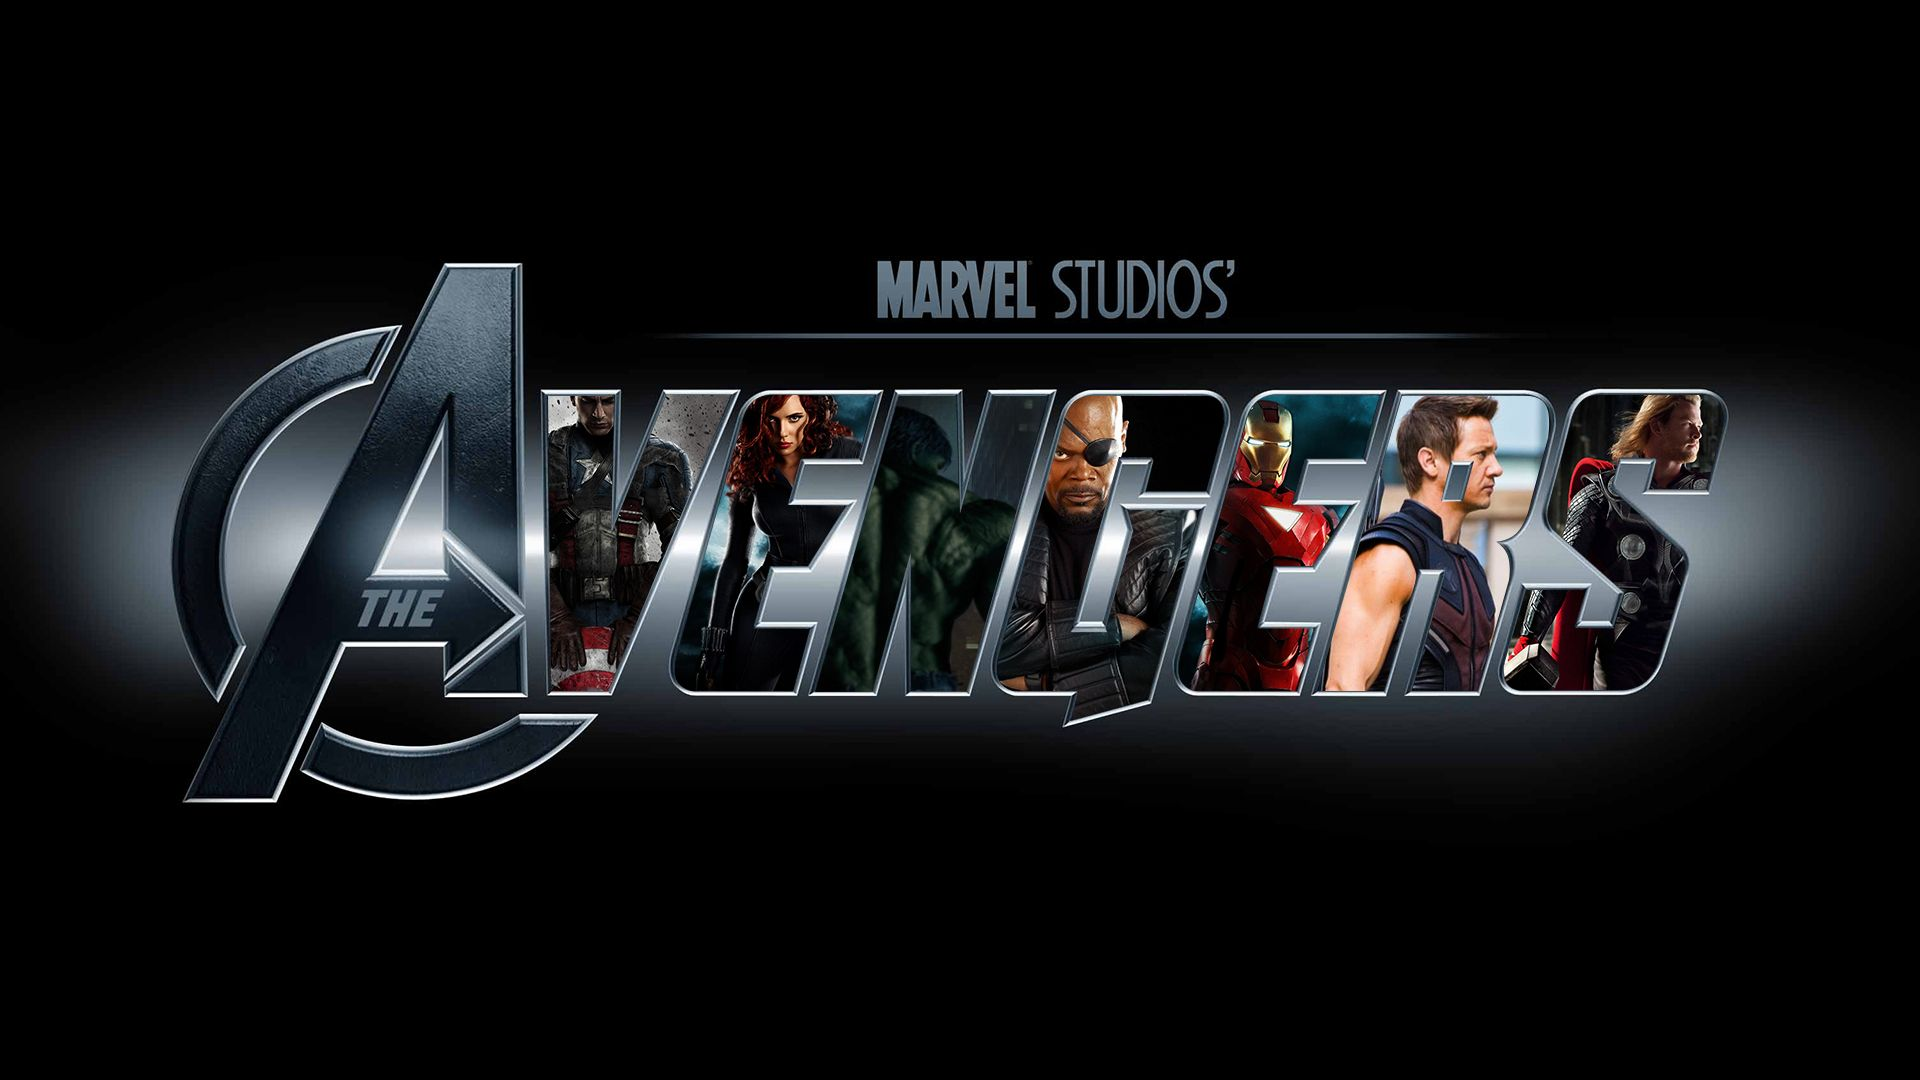 Avengers Logo Background Wallpaper Desktop Backgrounds For Free Hd Wallpaper Wall Art Com Logo Wallpaper Hd Avengers Wallpaper Avengers Logo